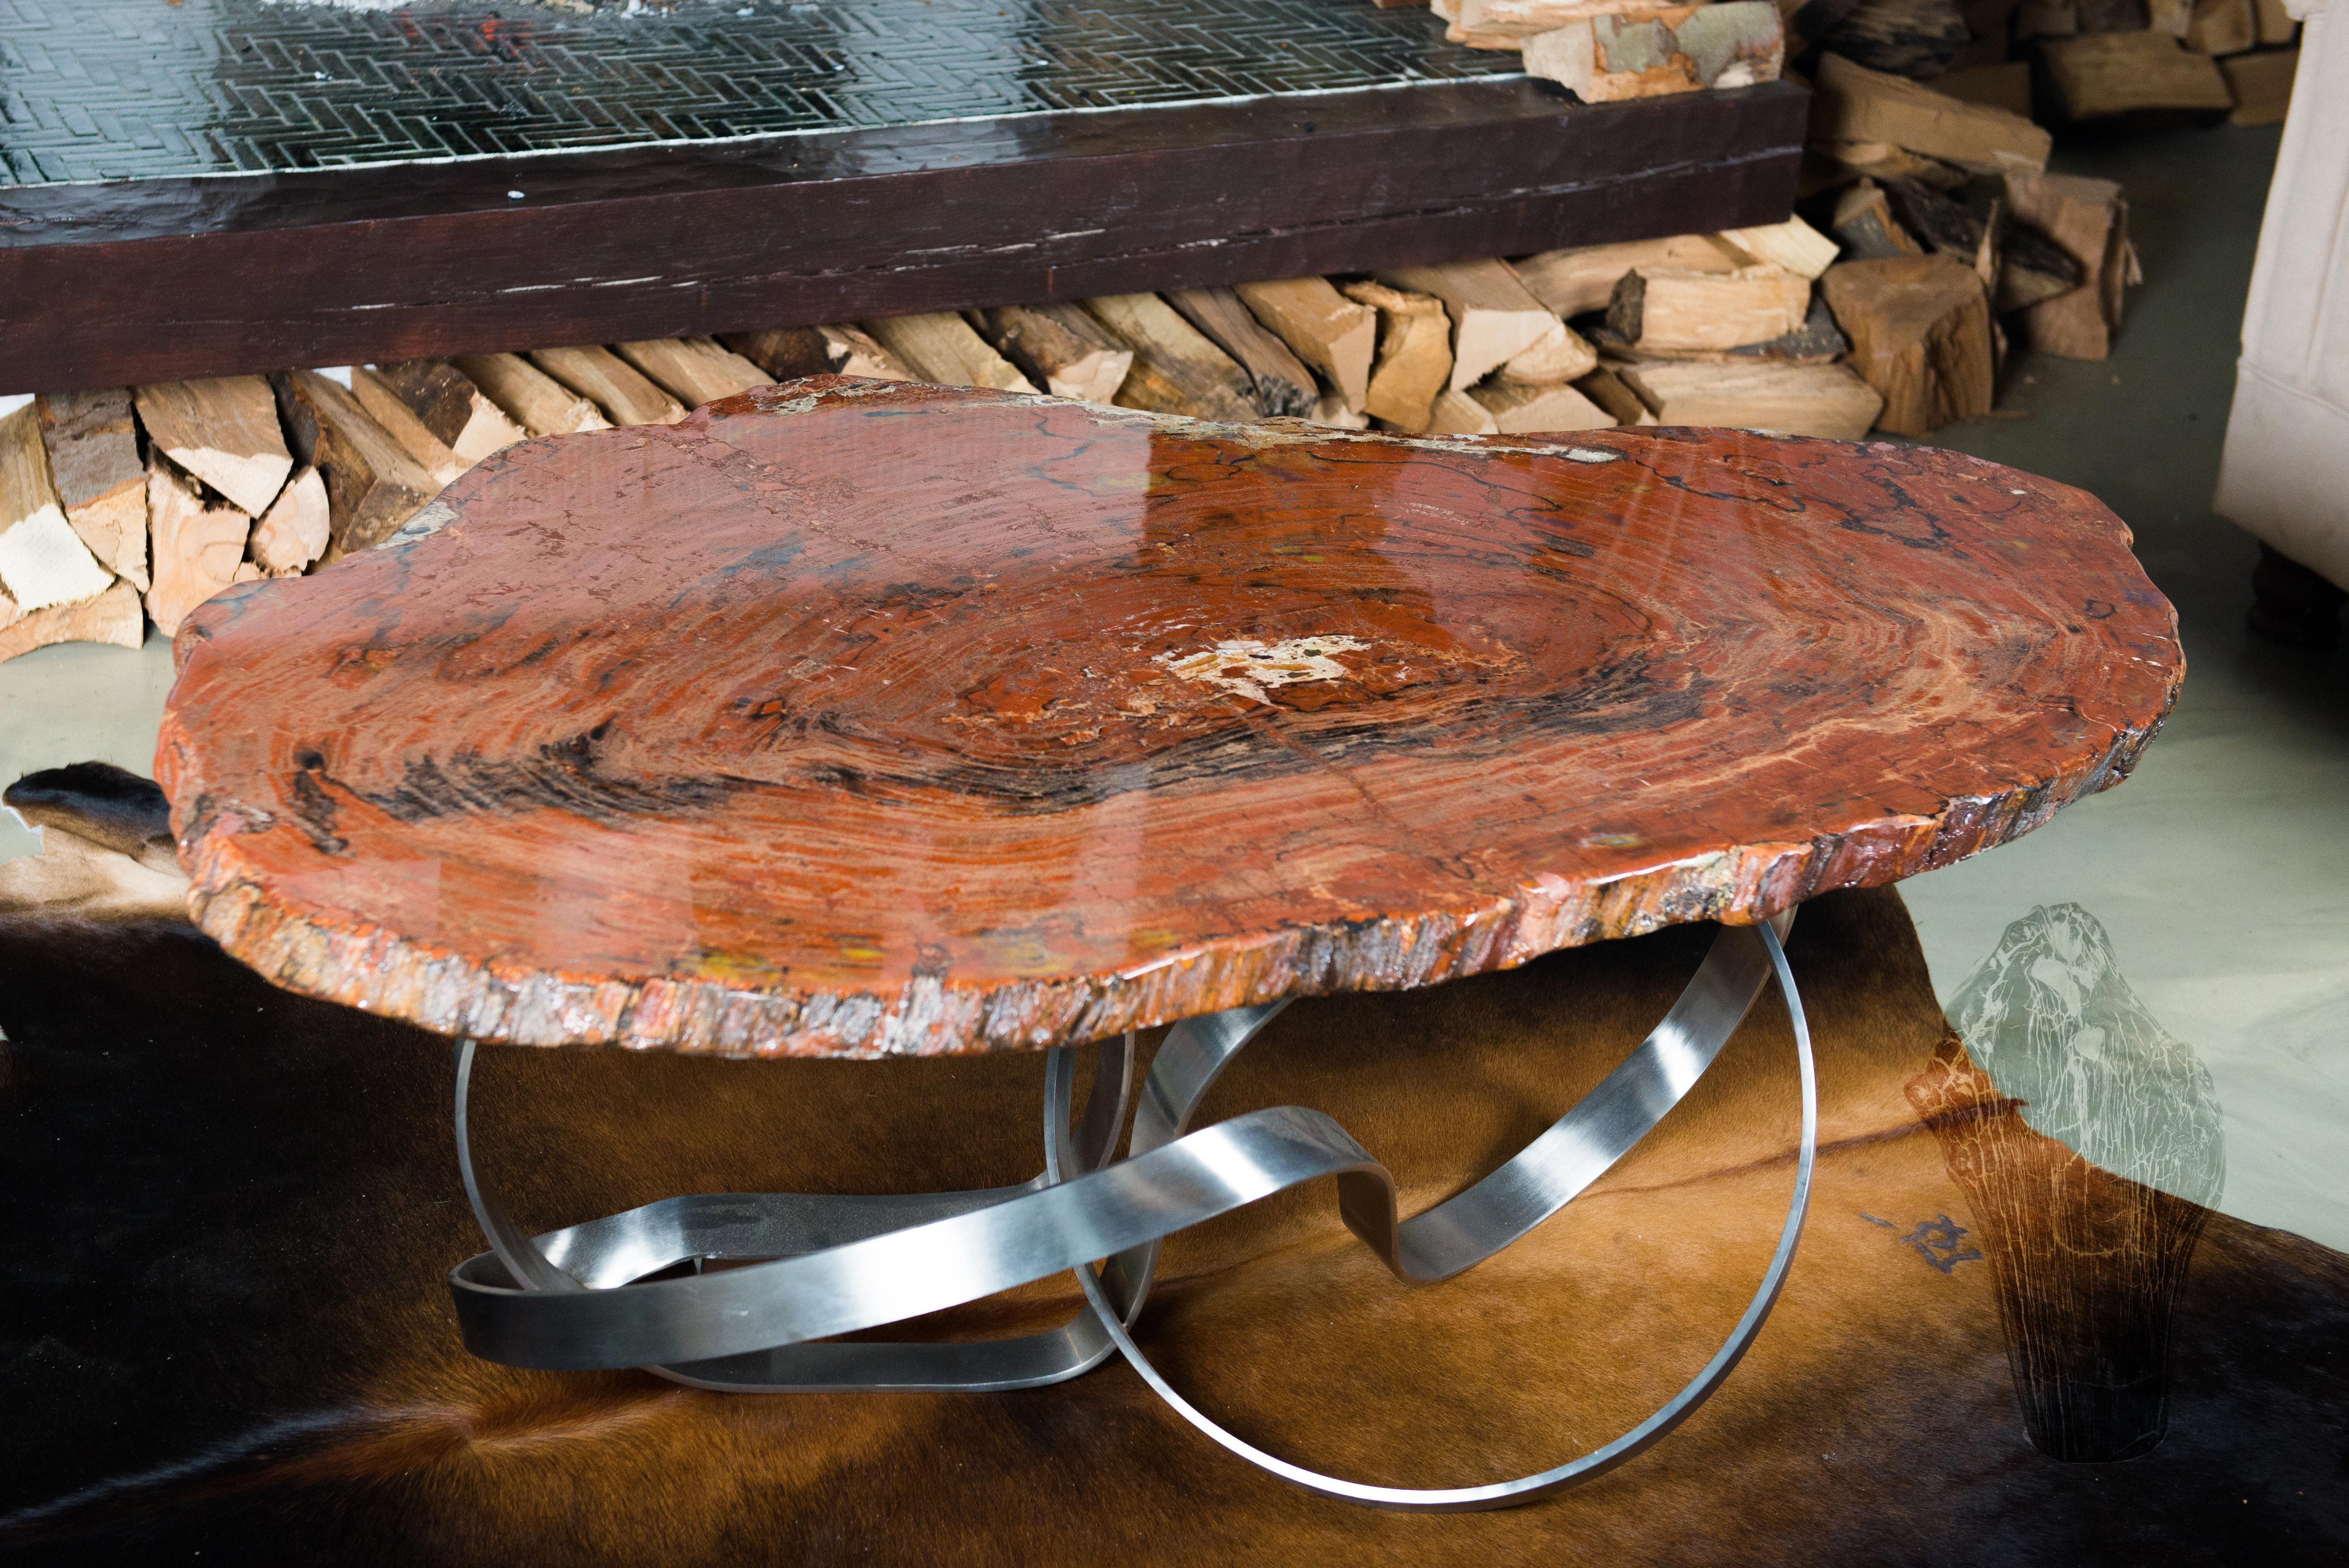 Unique Coffee Table Made Of Petrified Wood From Arizona Usa 200 Million Years Old Material Coffee Table Wood Unique Coffee Table Coffee Table